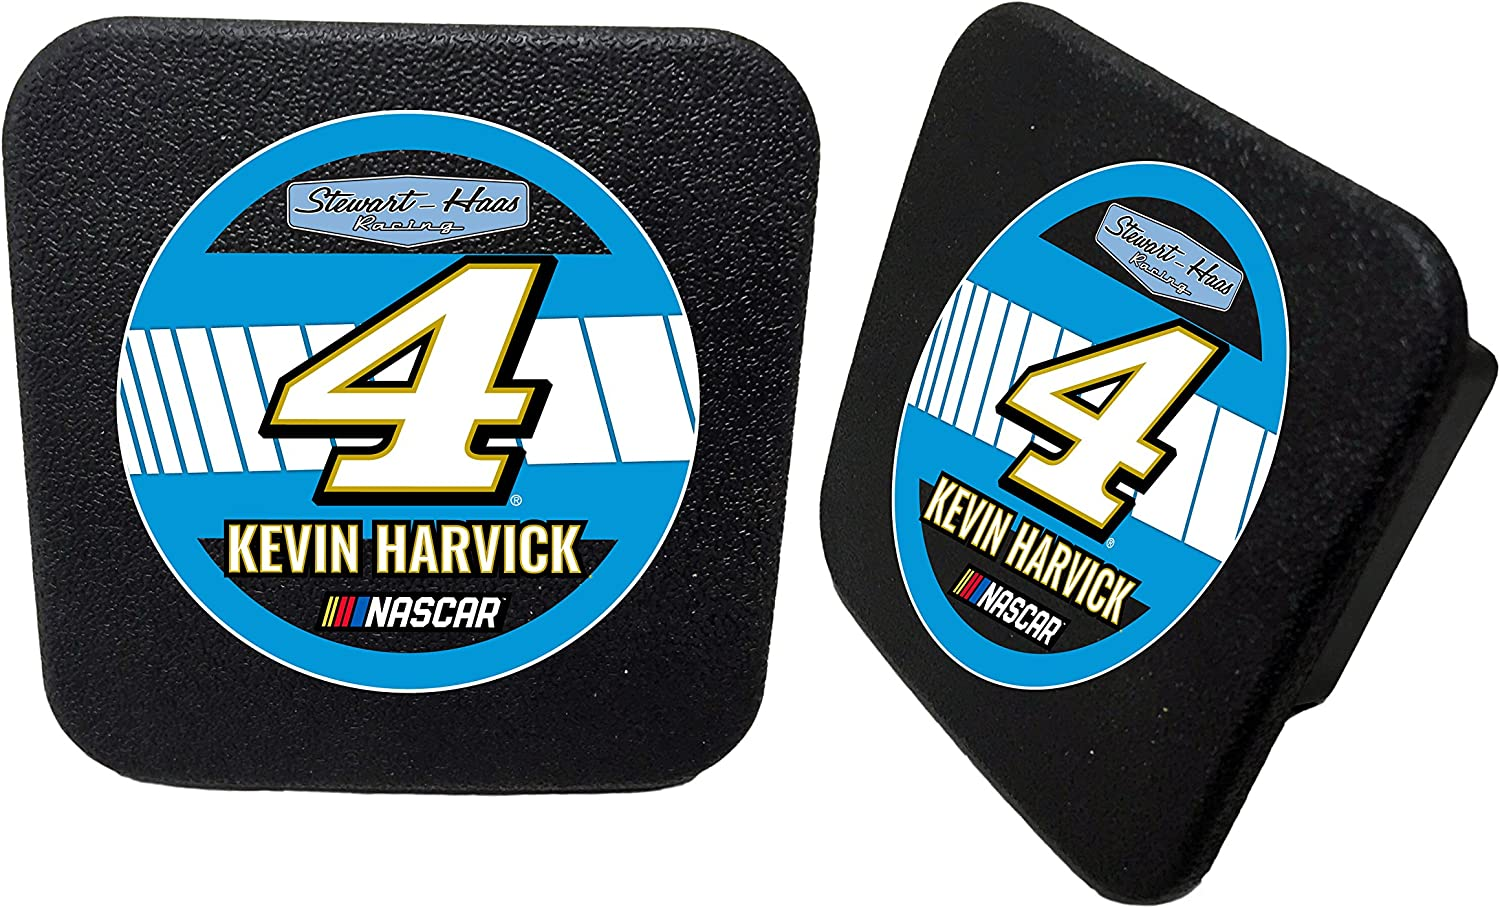 2021 model Kevin Harvick #4 Rubber Cover Trailer At the price of surprise Hitch